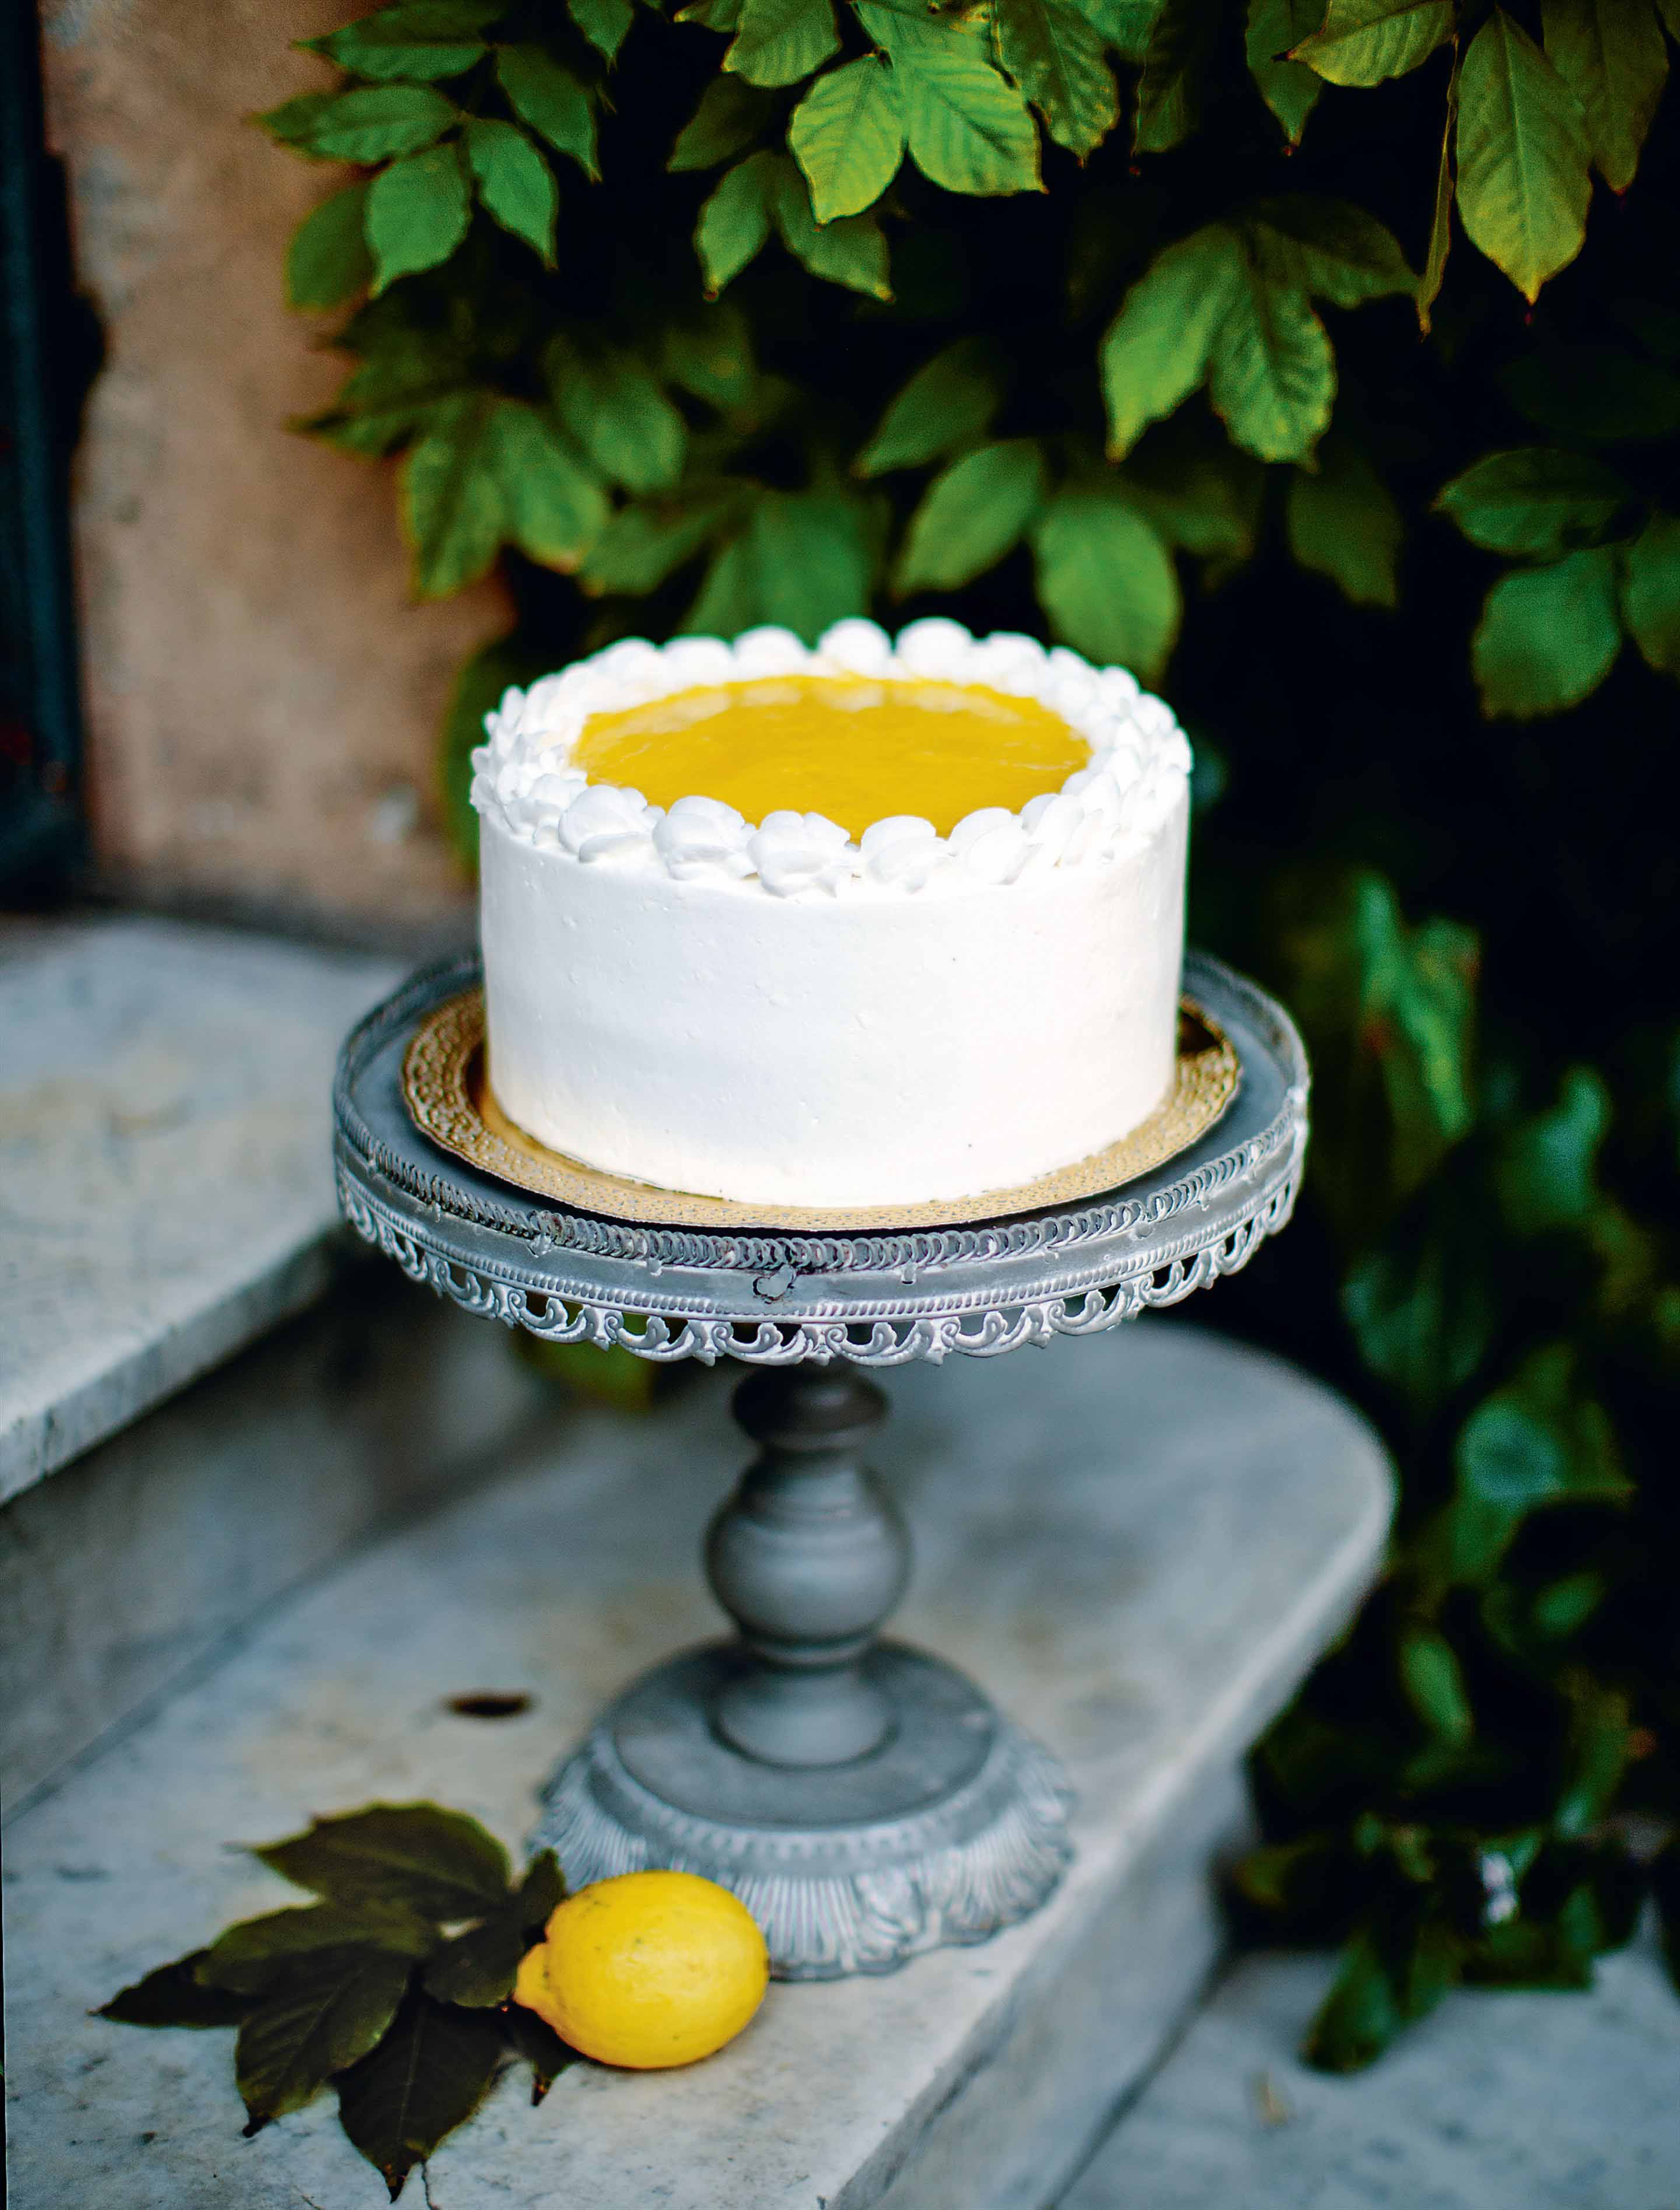 Lemon and mascarpone cake